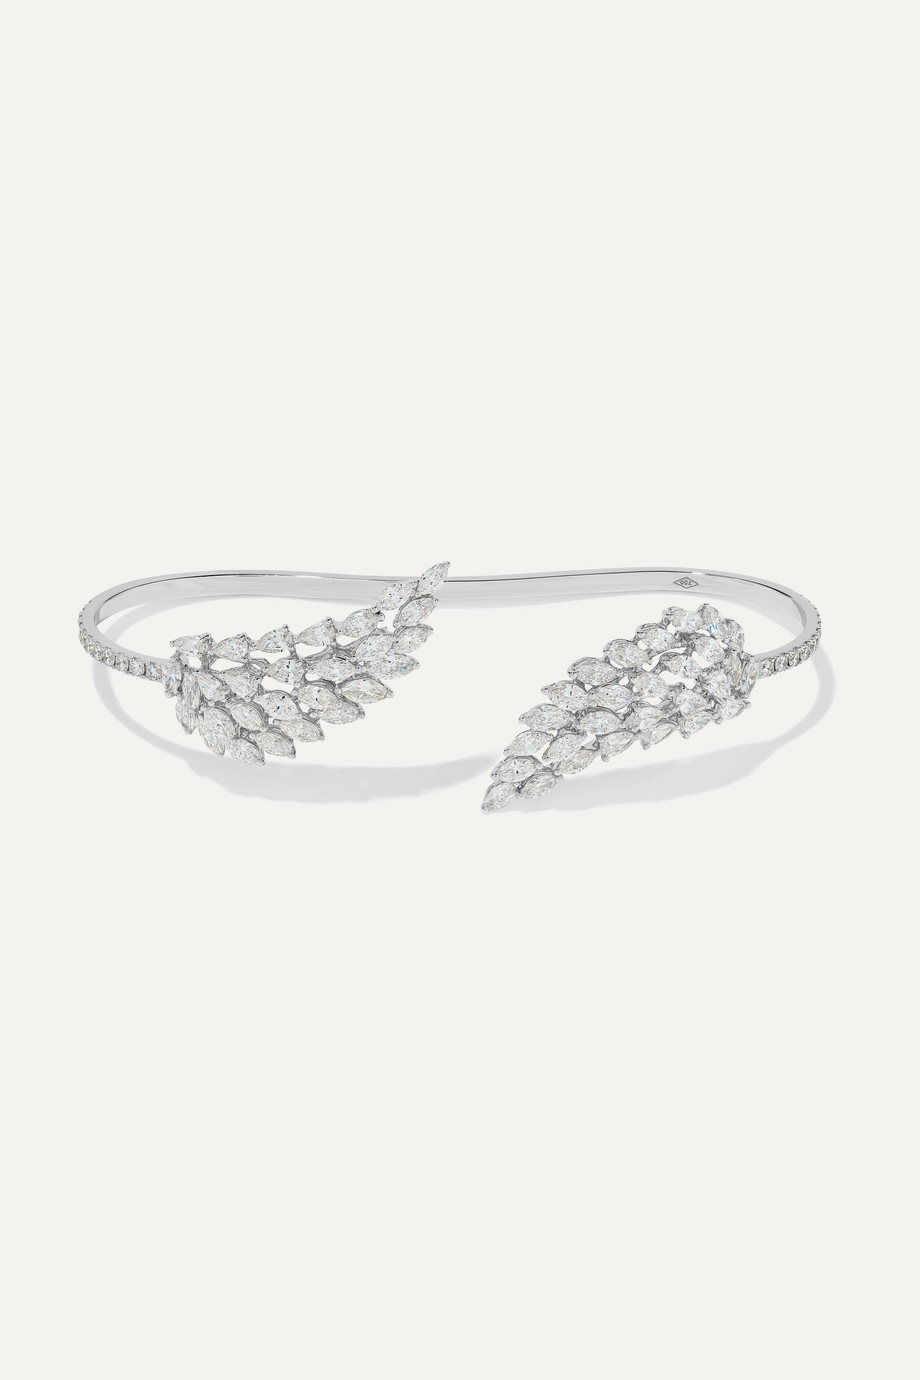 Messika Bracelet en or blanc 18 carats et diamants Angel